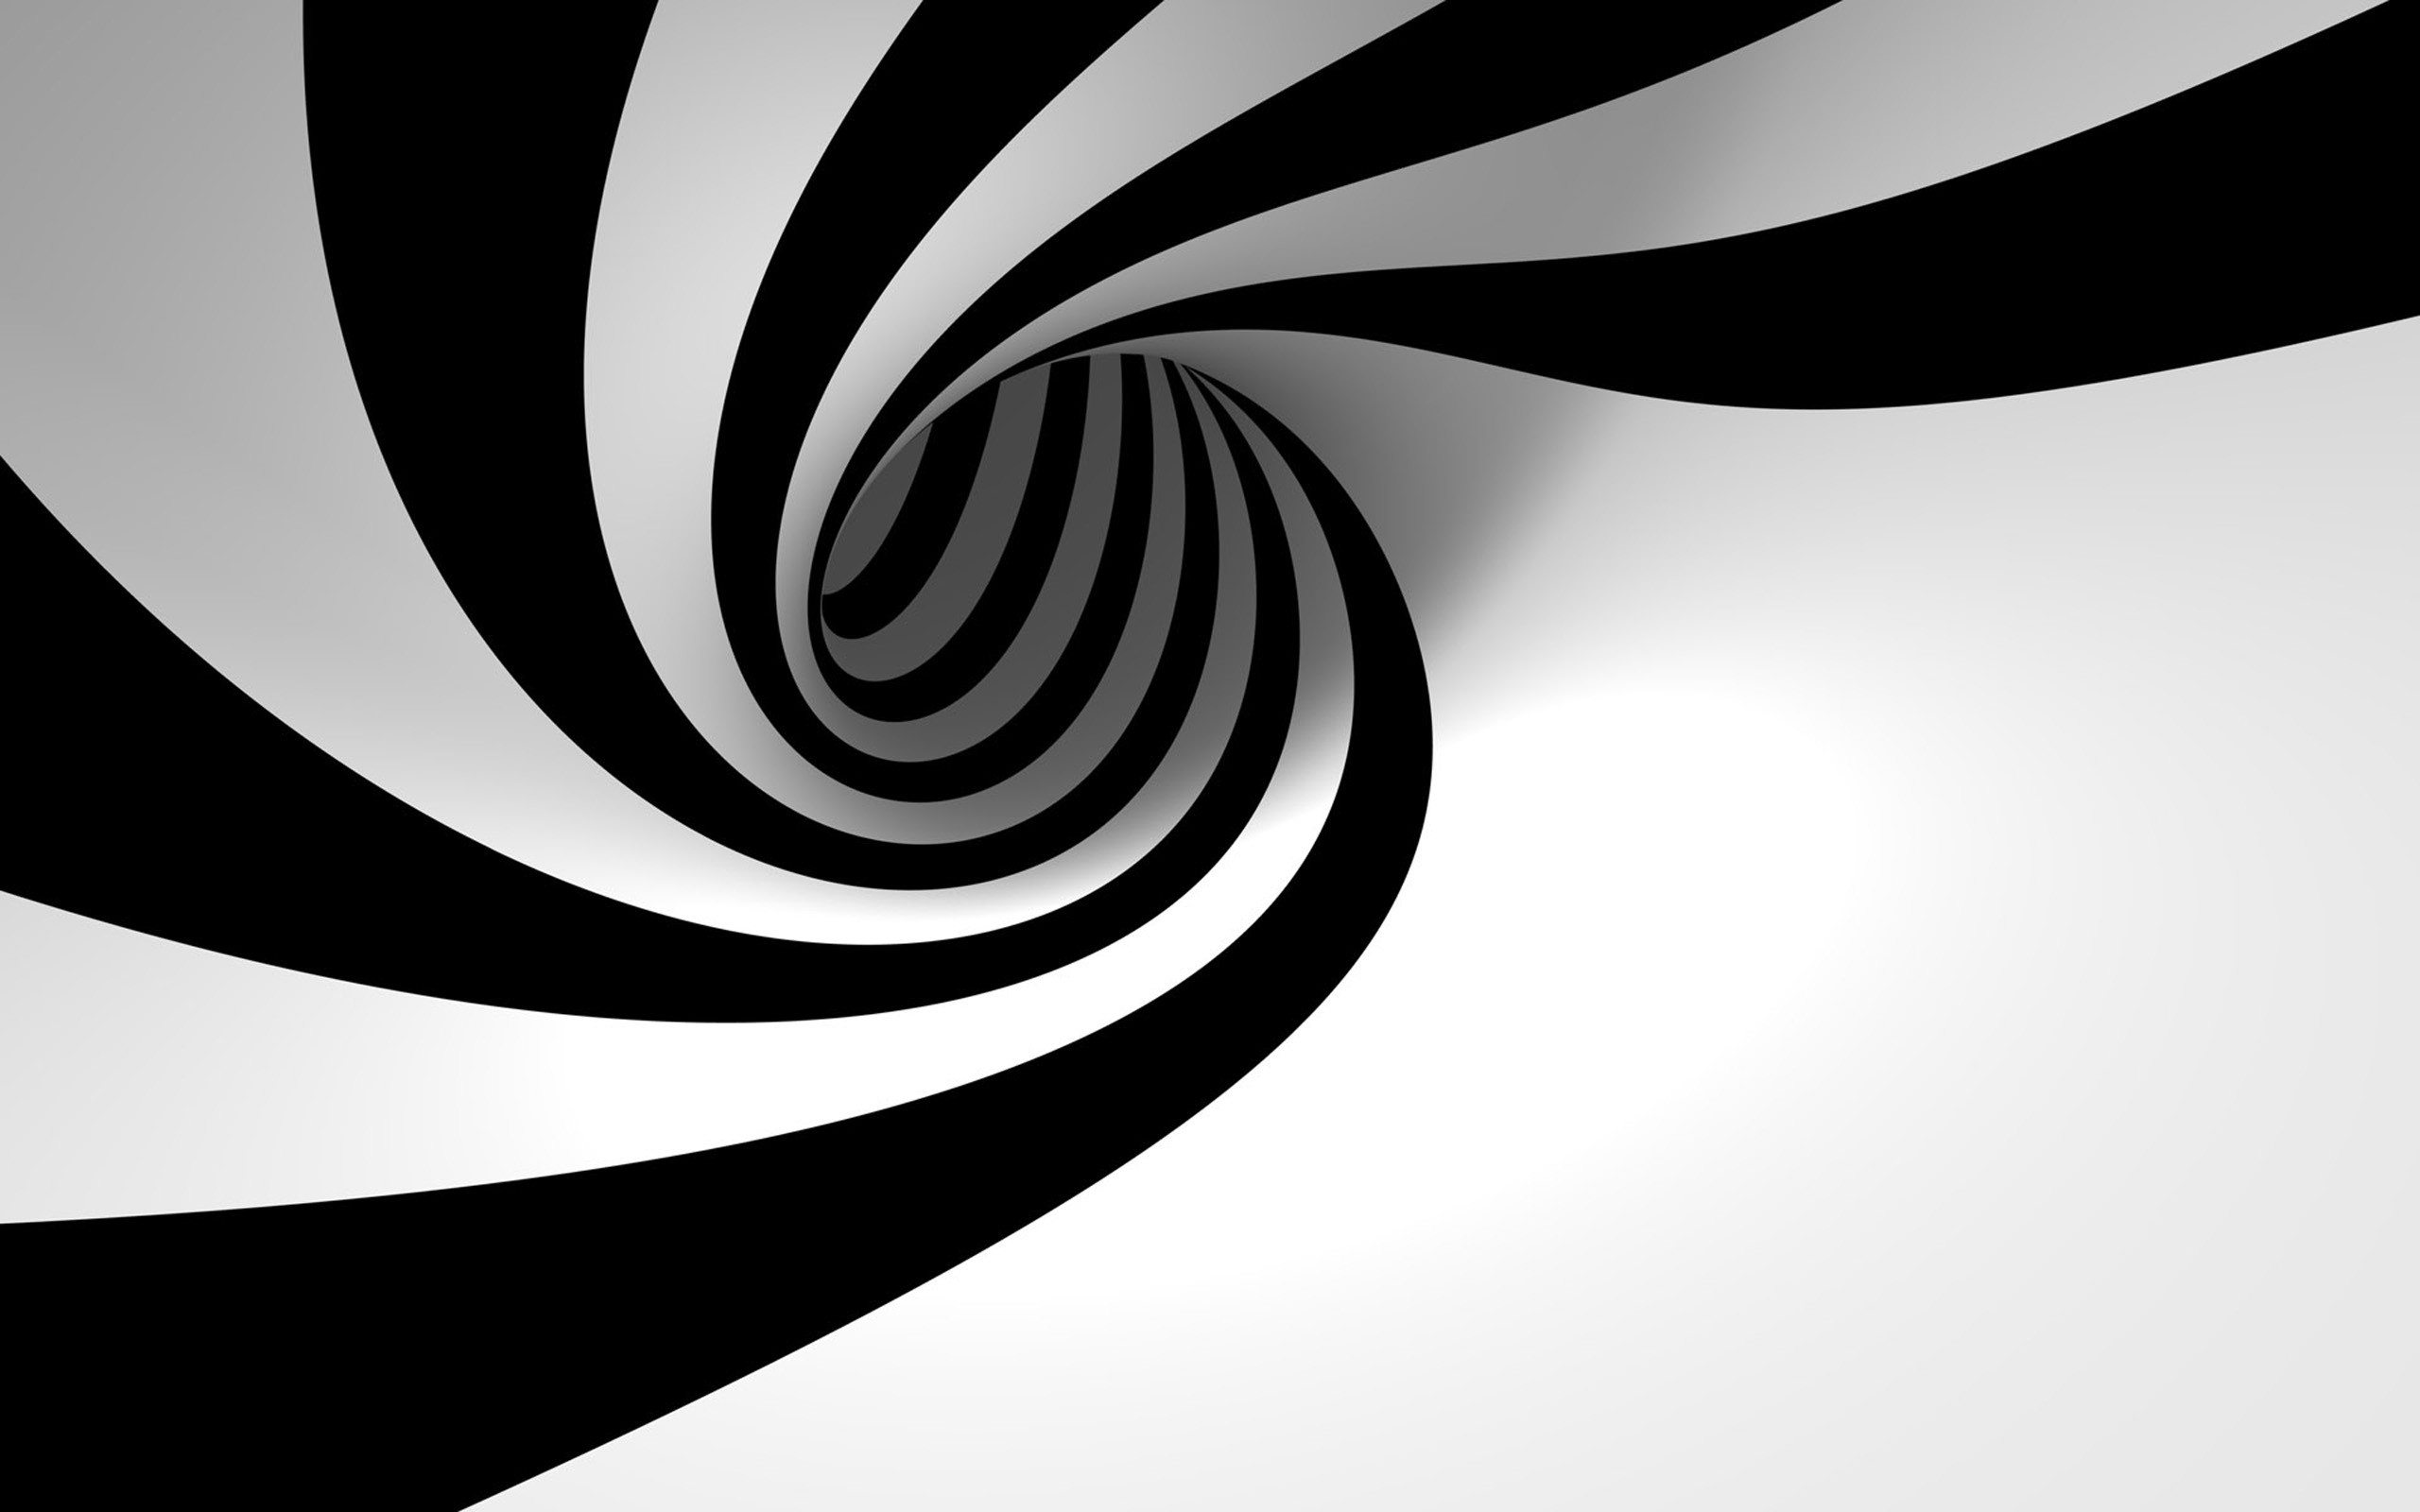 2560x1600 Download for free an abstract black and white wallpaper / background .